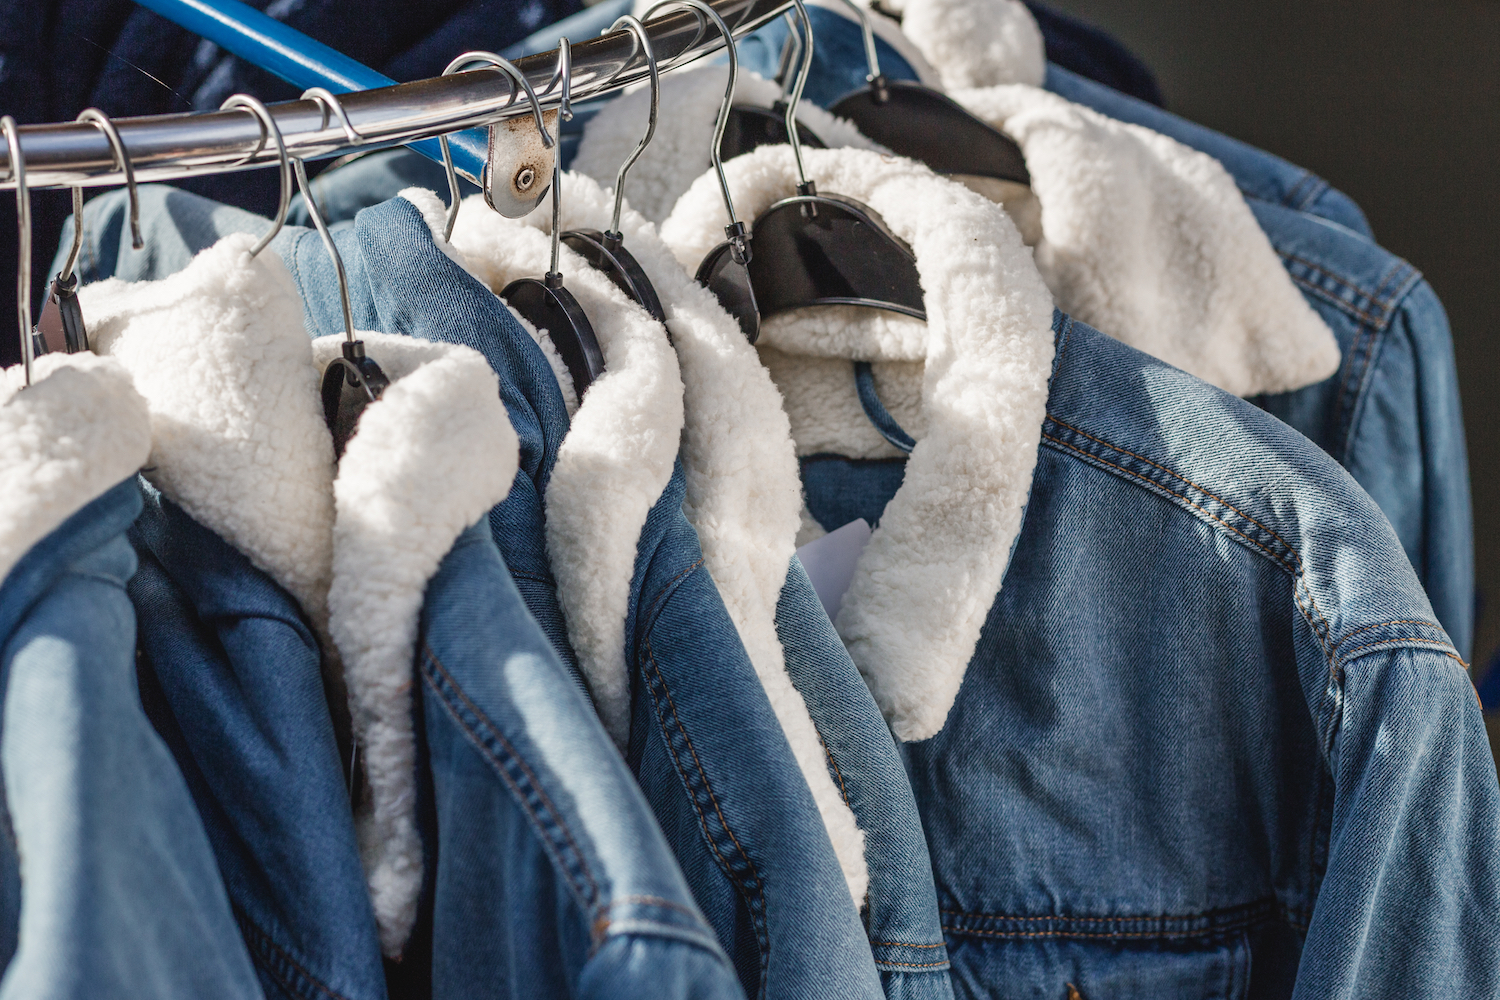 Denim brands including Sacai, Monki and American Eagle winterize jean jackets with cozy sherpa lining, fur collars and quilted details.